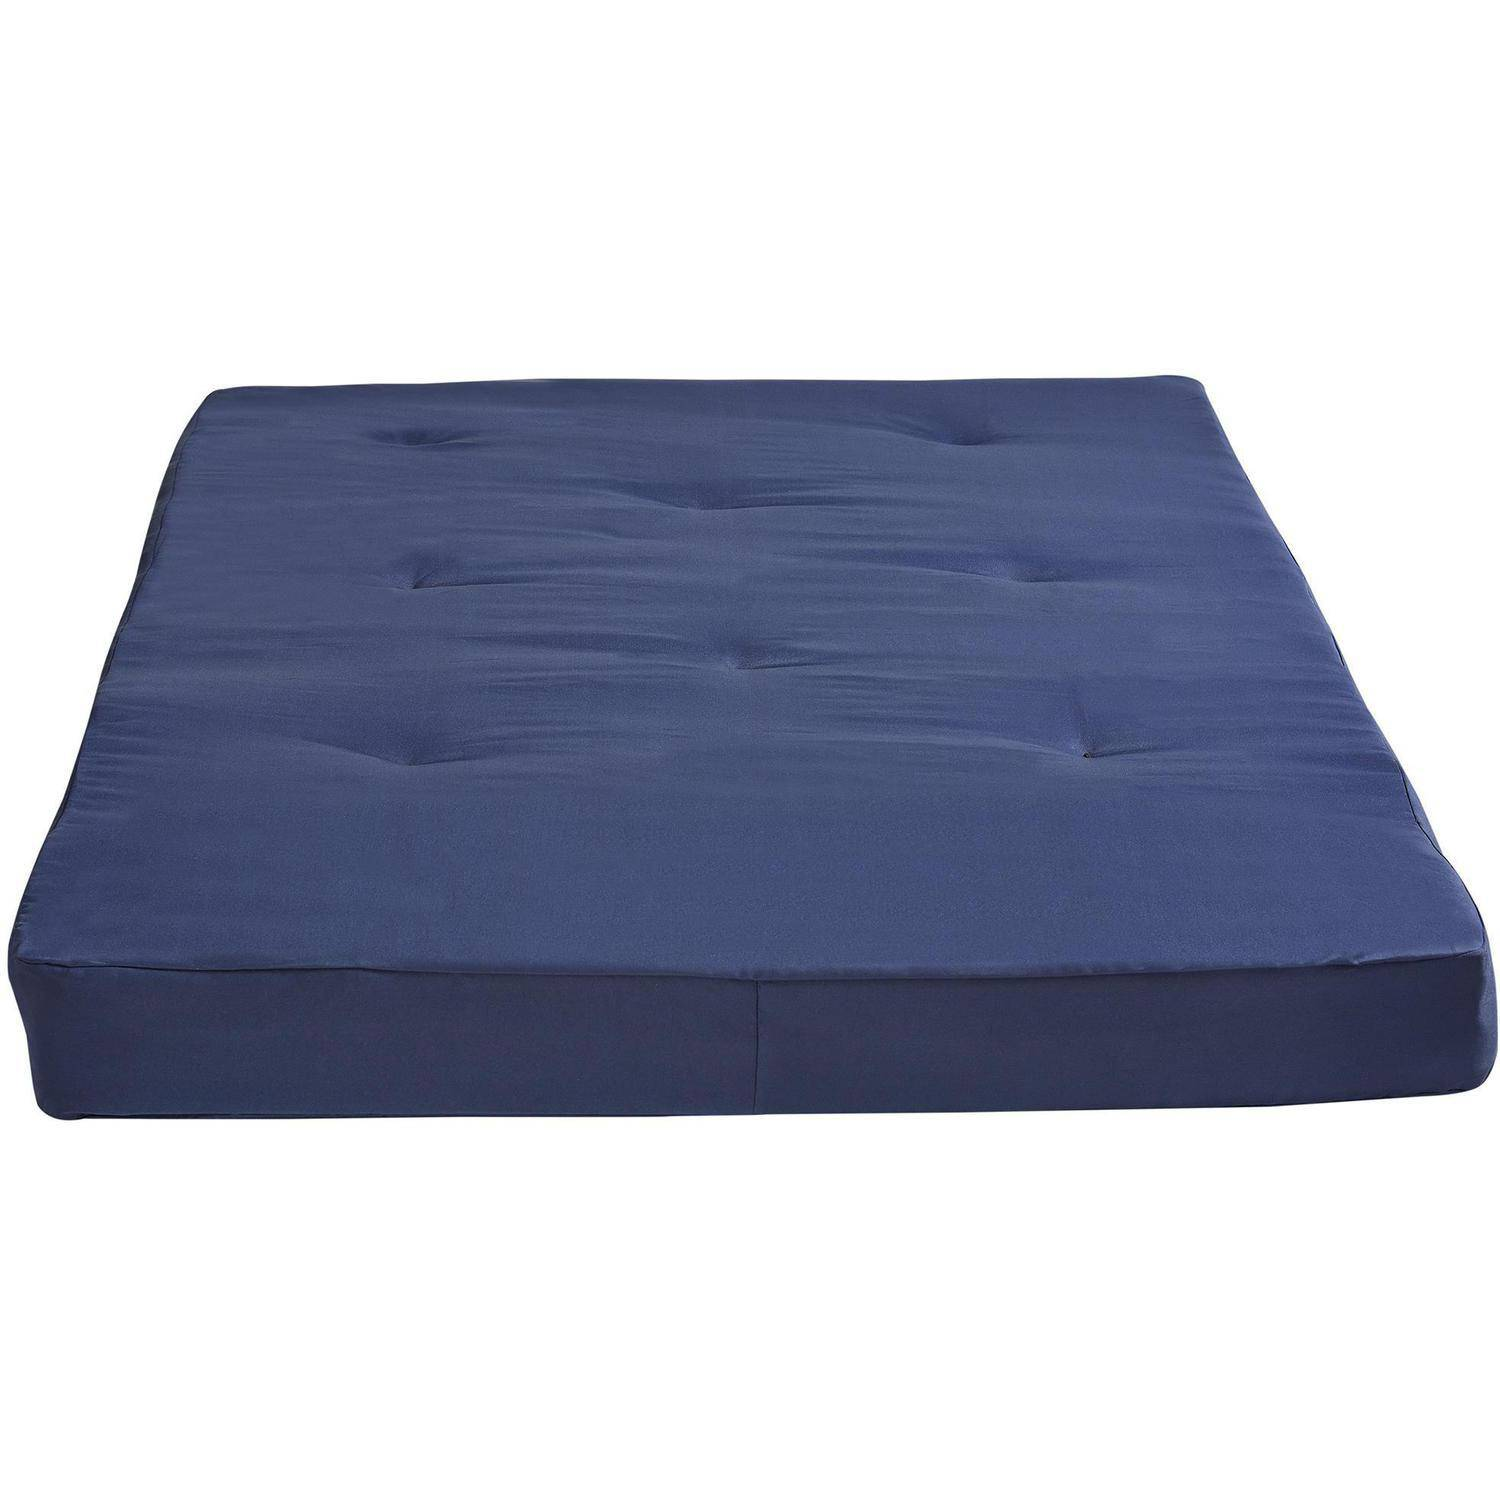 dhp 8 tufted full futon mattress navy blue walmart com